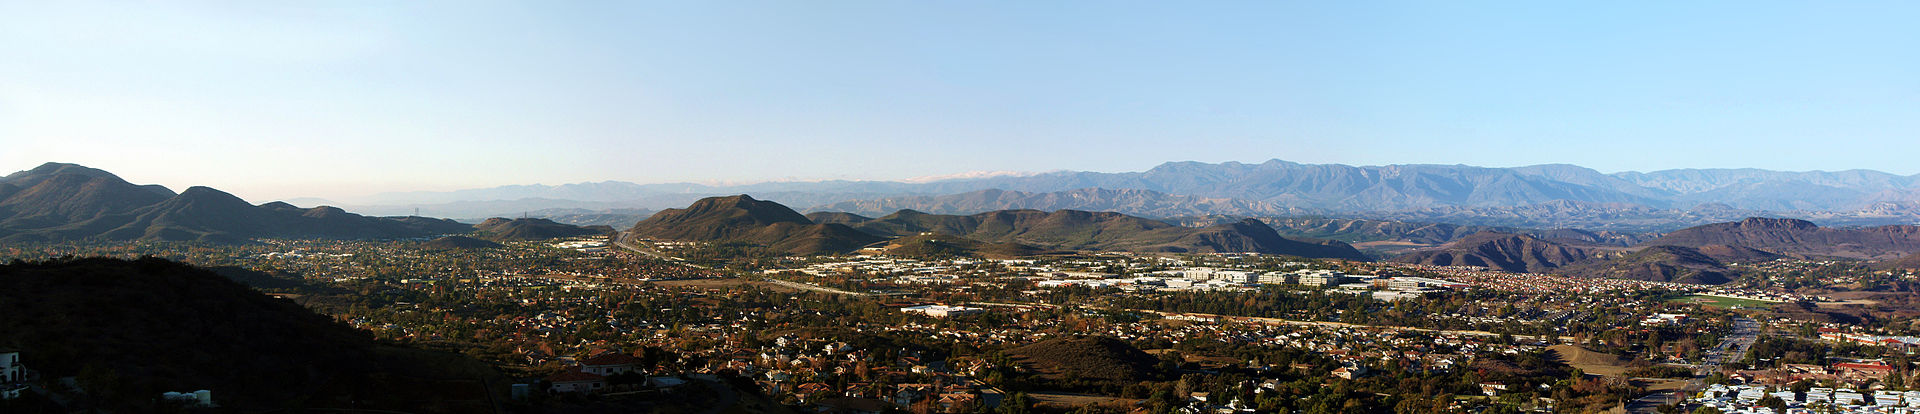 Thousand Oaks, CA